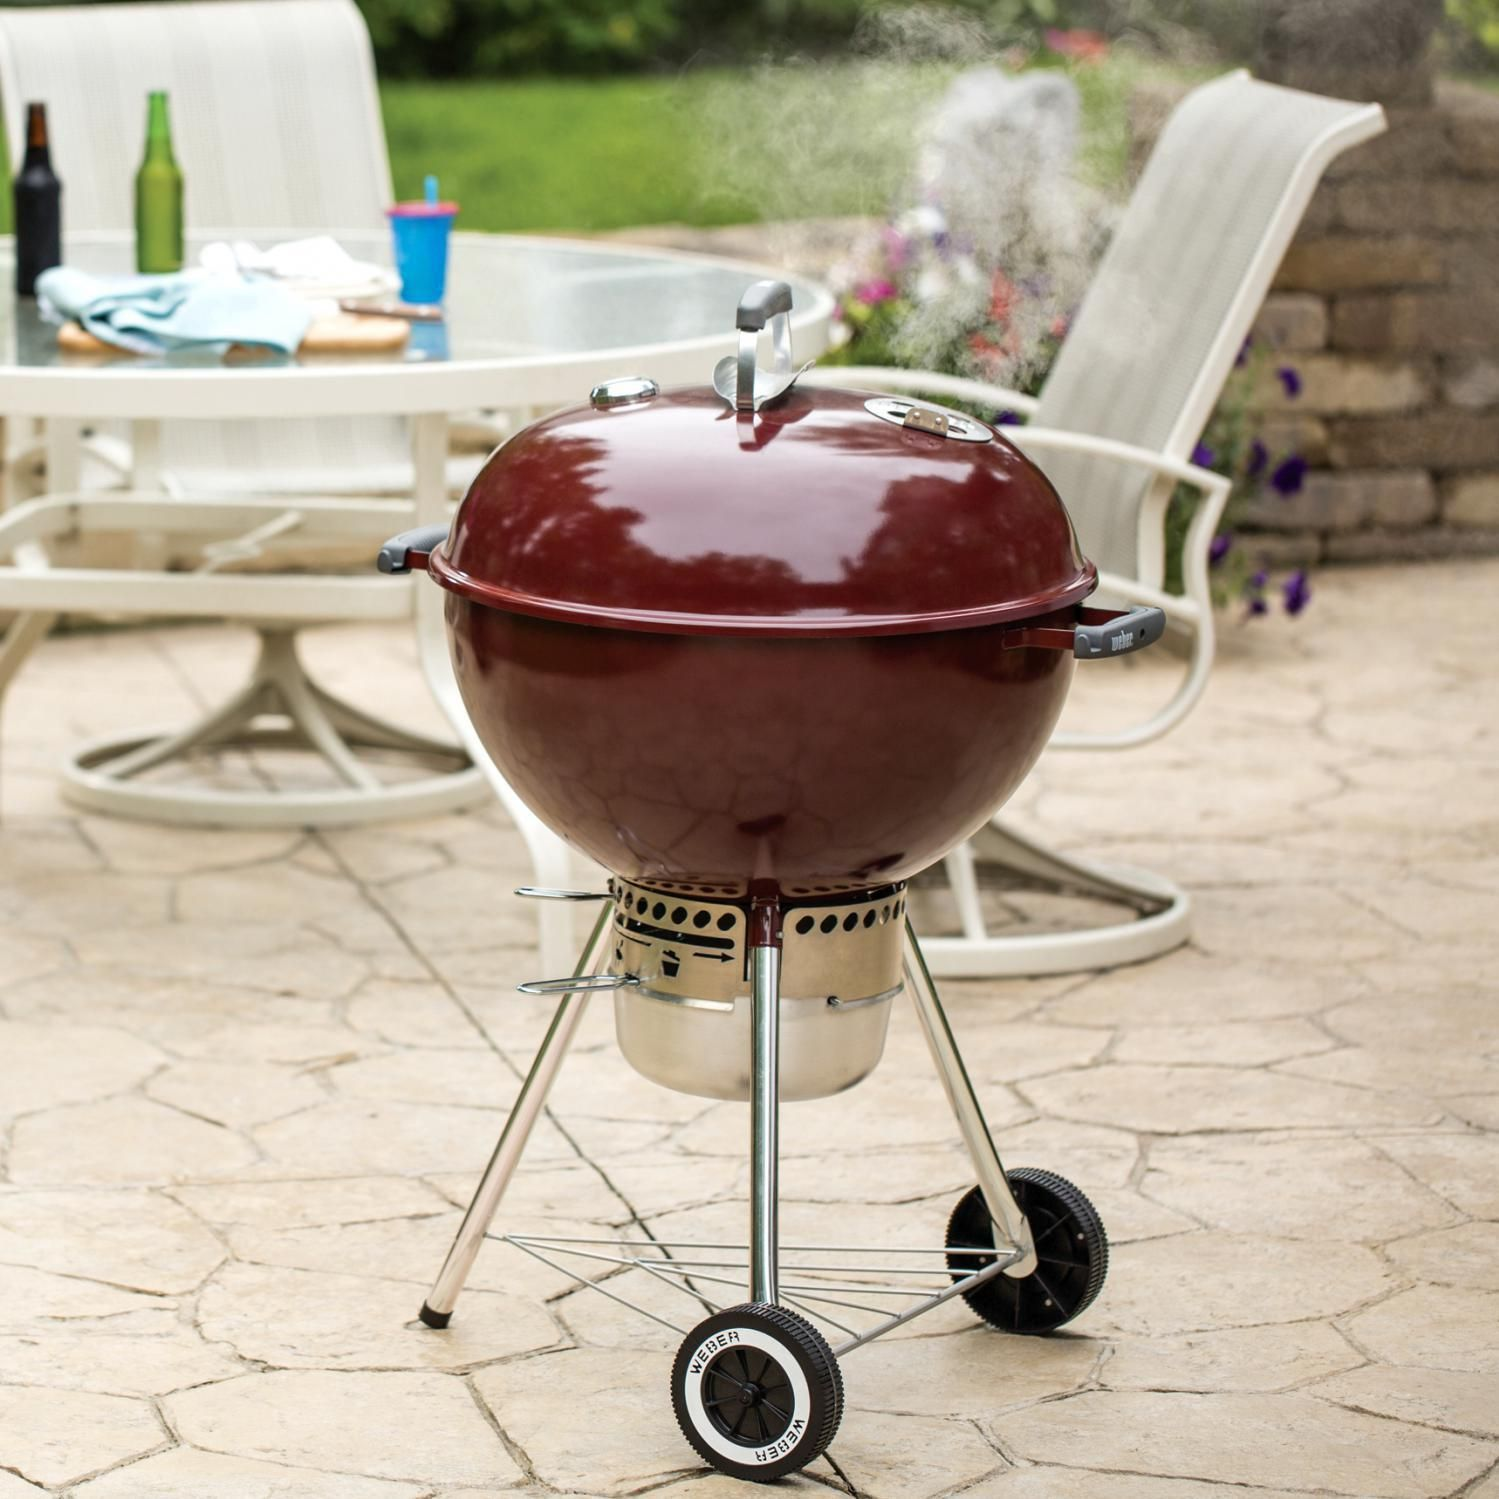 Weber Original Kettle Premium 22 Inch Charcoal Grill Crimson 14403001 Bbqguys Charcoal Grill Cooking Area Kettle